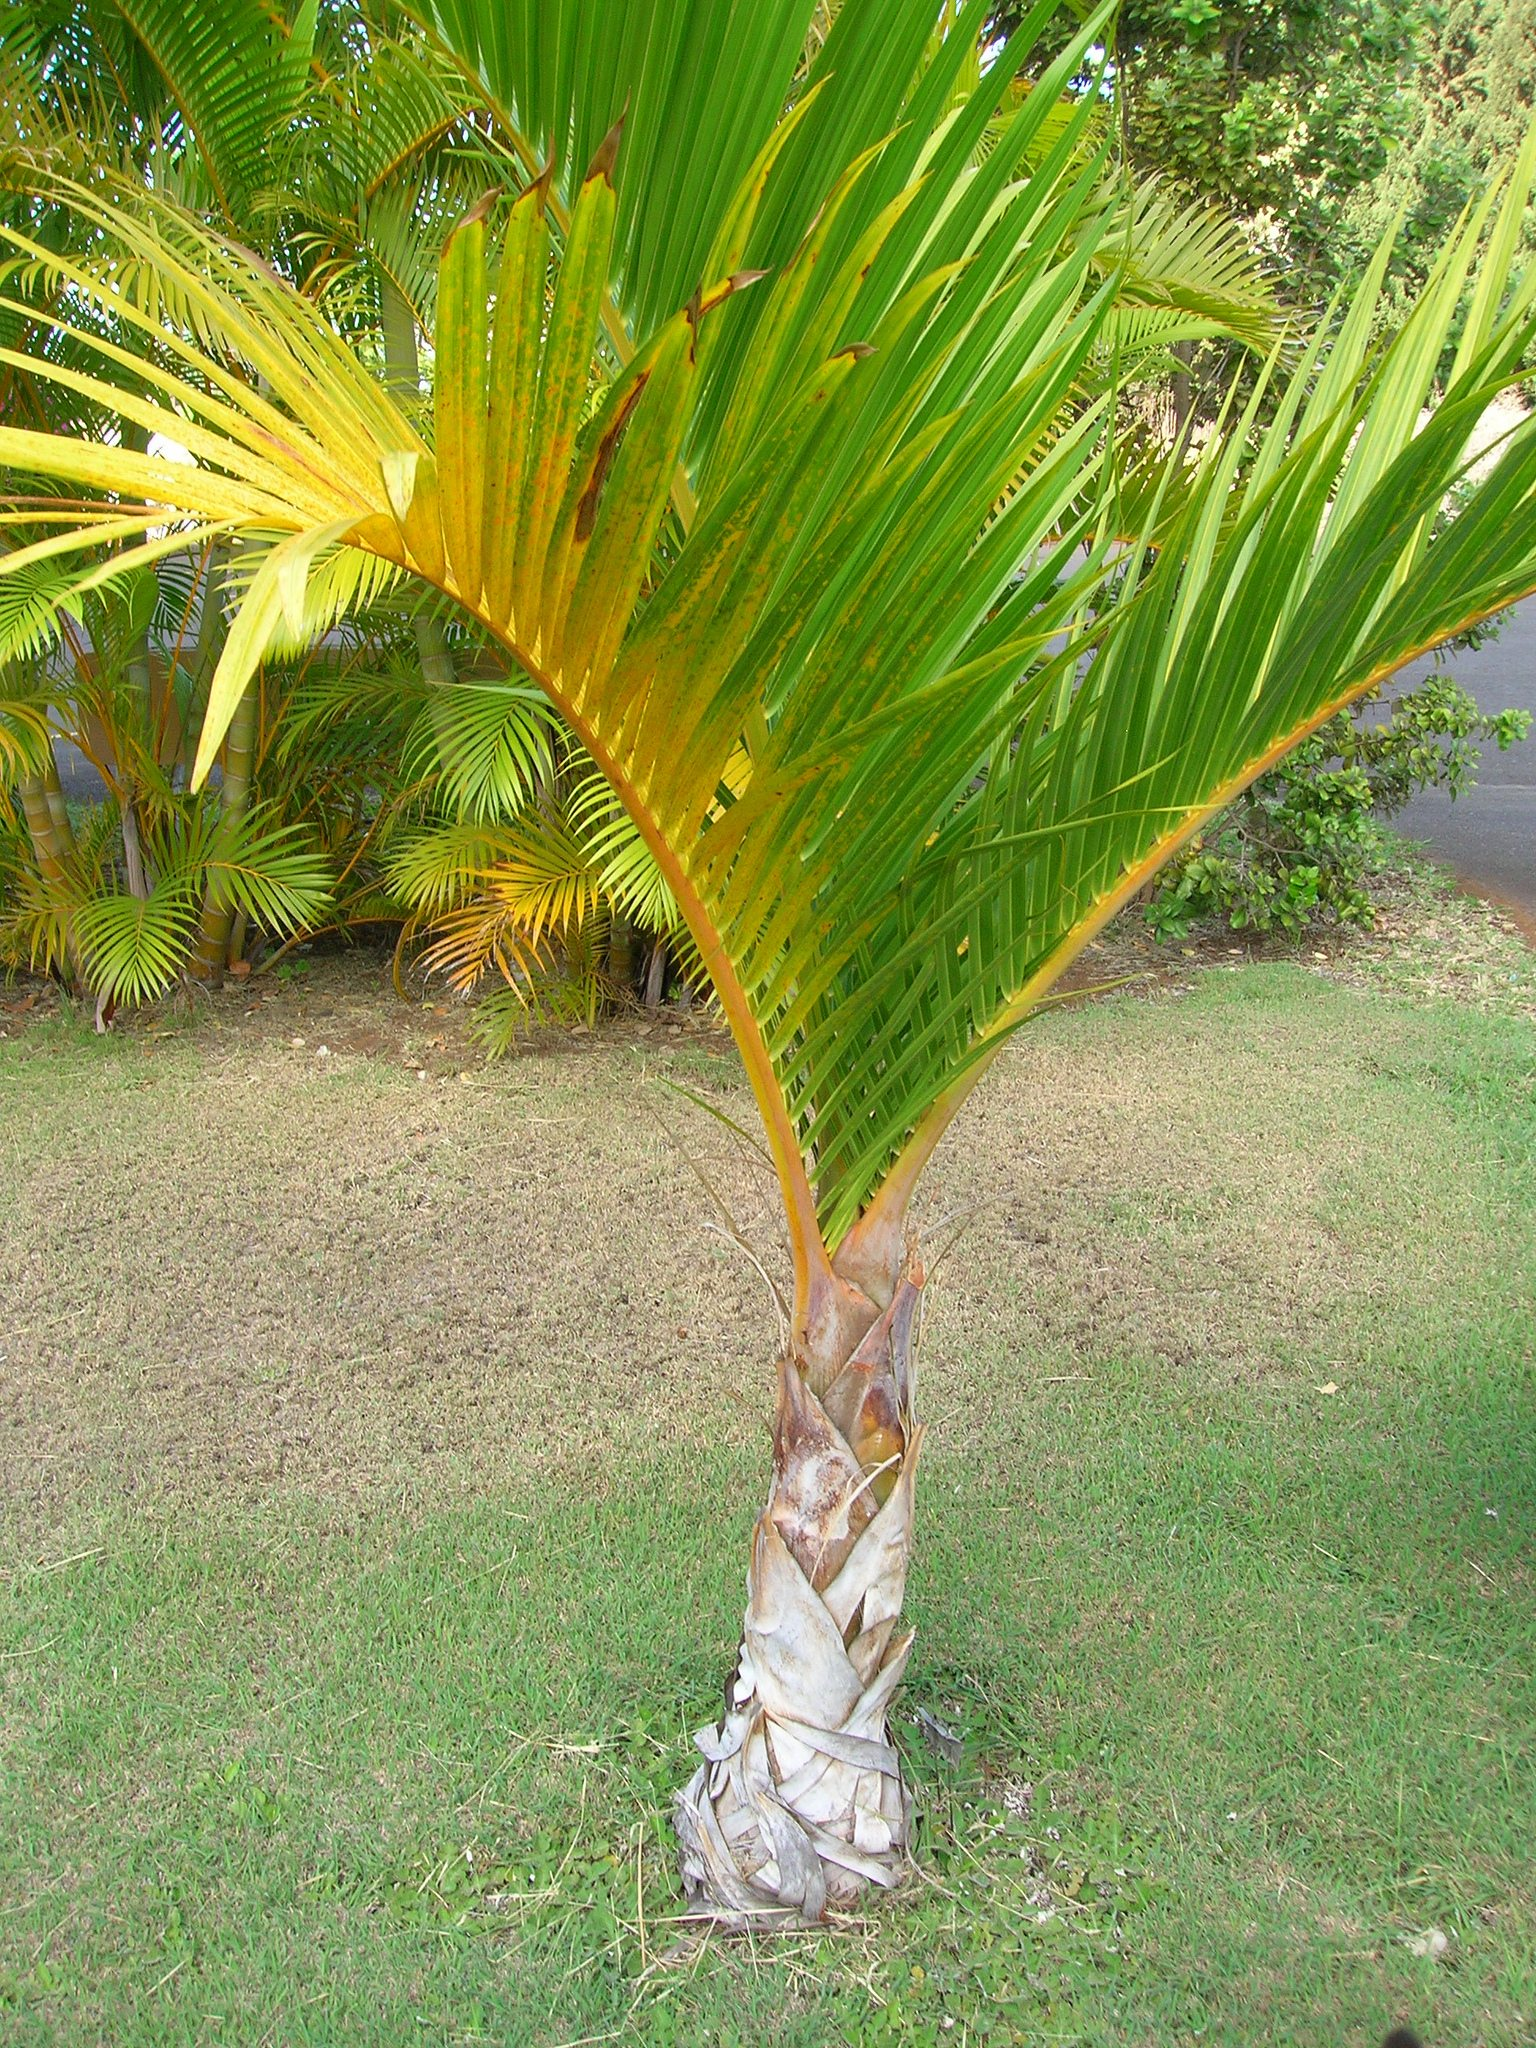 Learn how to grow garden palm trees in the country (tips for beginners)